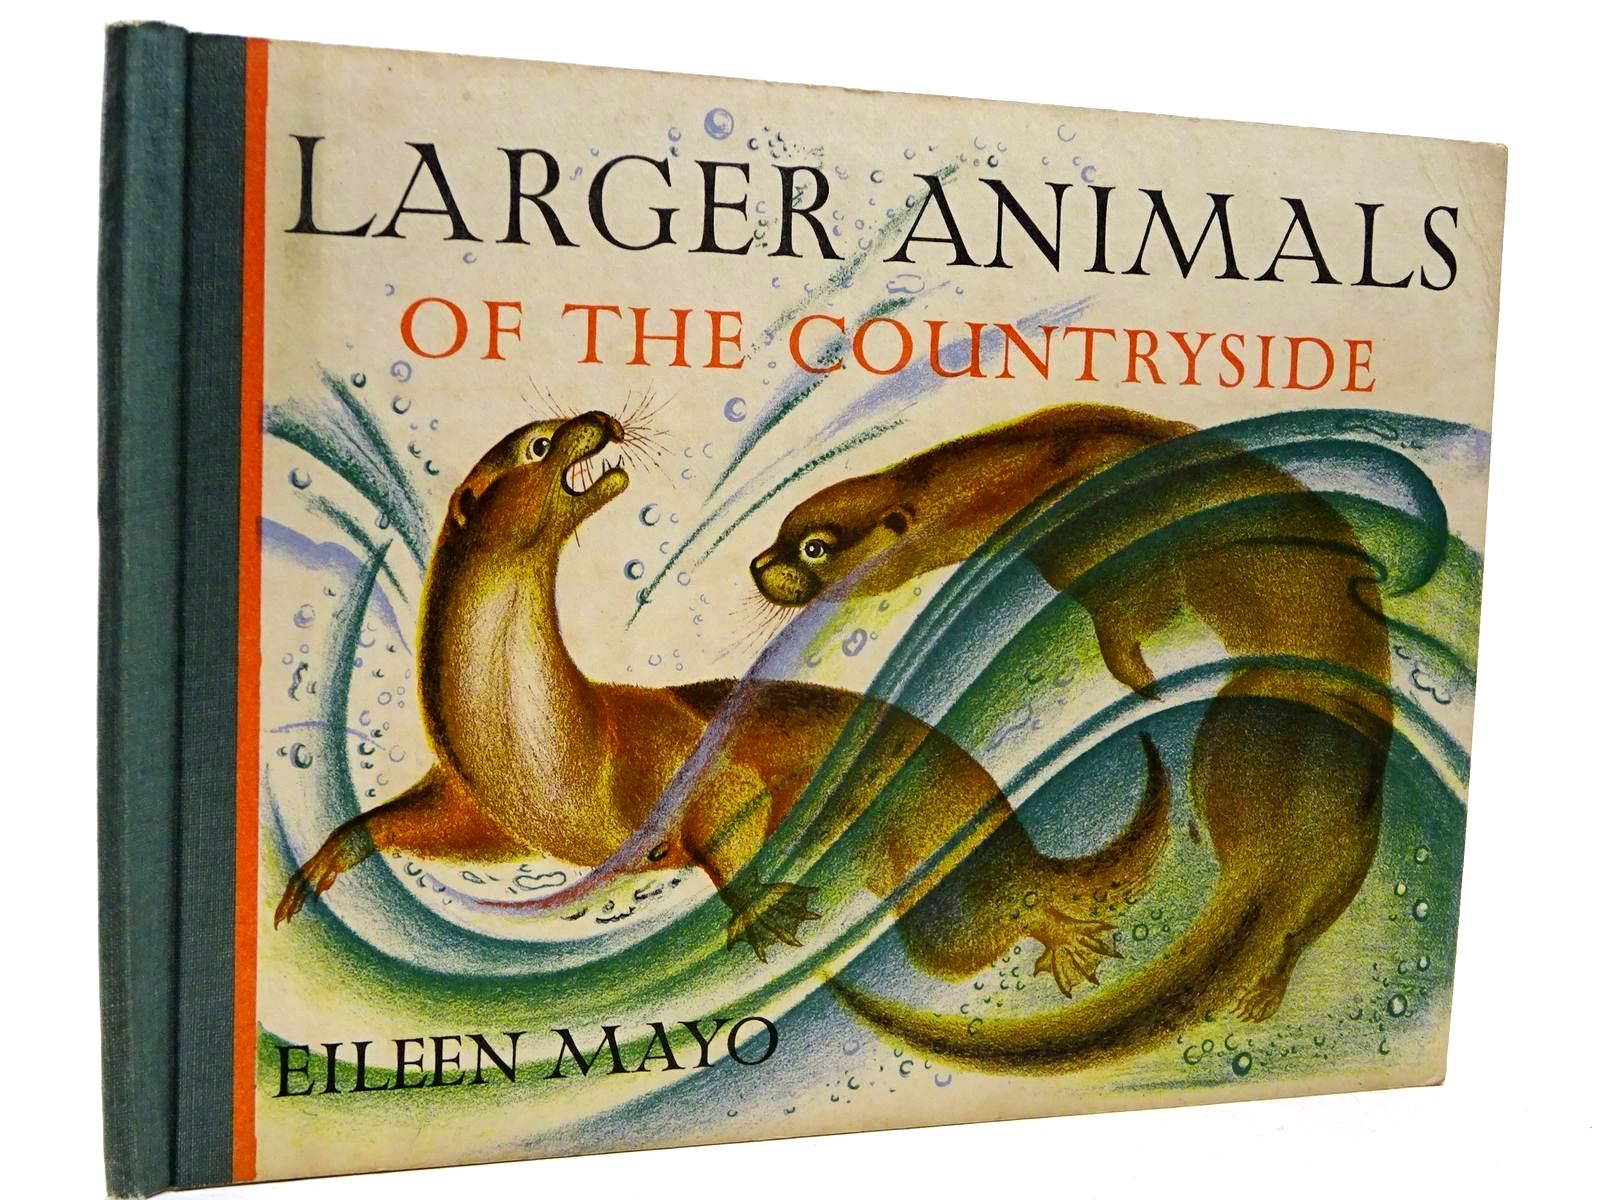 Photo of LARGER ANIMALS OF THE COUNTRYSIDE written by Mayo, Eileen illustrated by Mayo, Eileen published by Pleiades Books Ltd. (STOCK CODE: 2130233)  for sale by Stella & Rose's Books